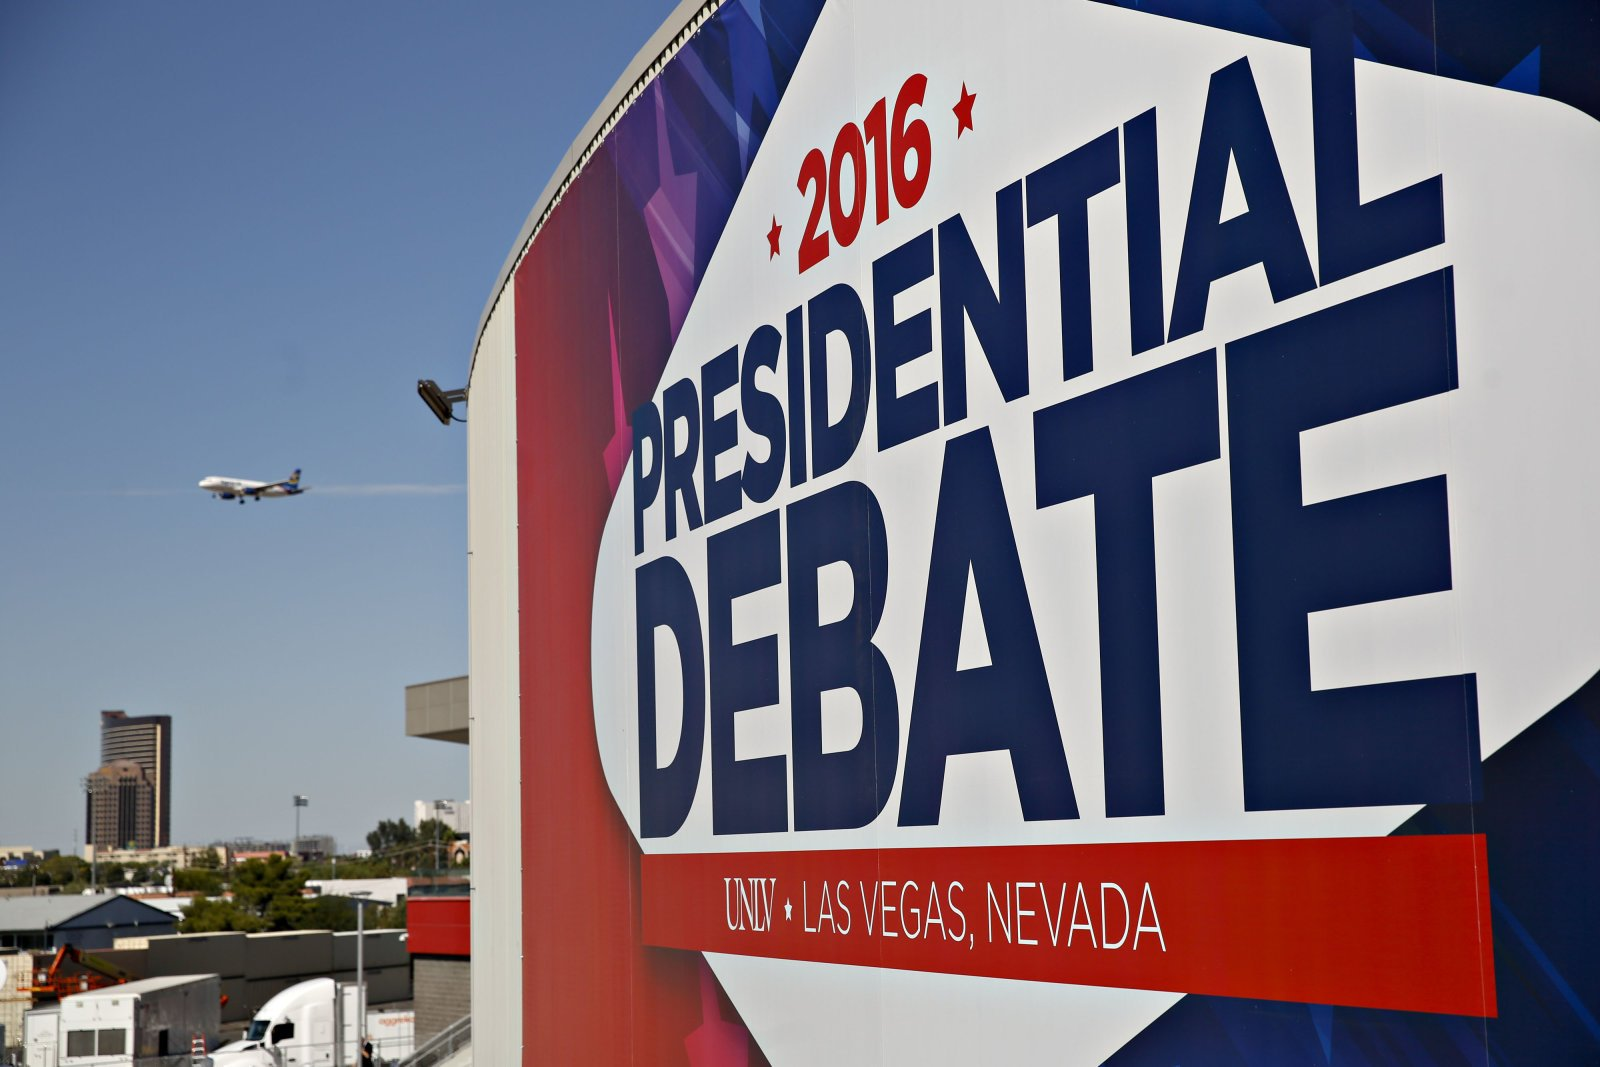 Preparations Ahead Of Third Presidential Debate Between Candidates Hillary Clinton And Donald Trump